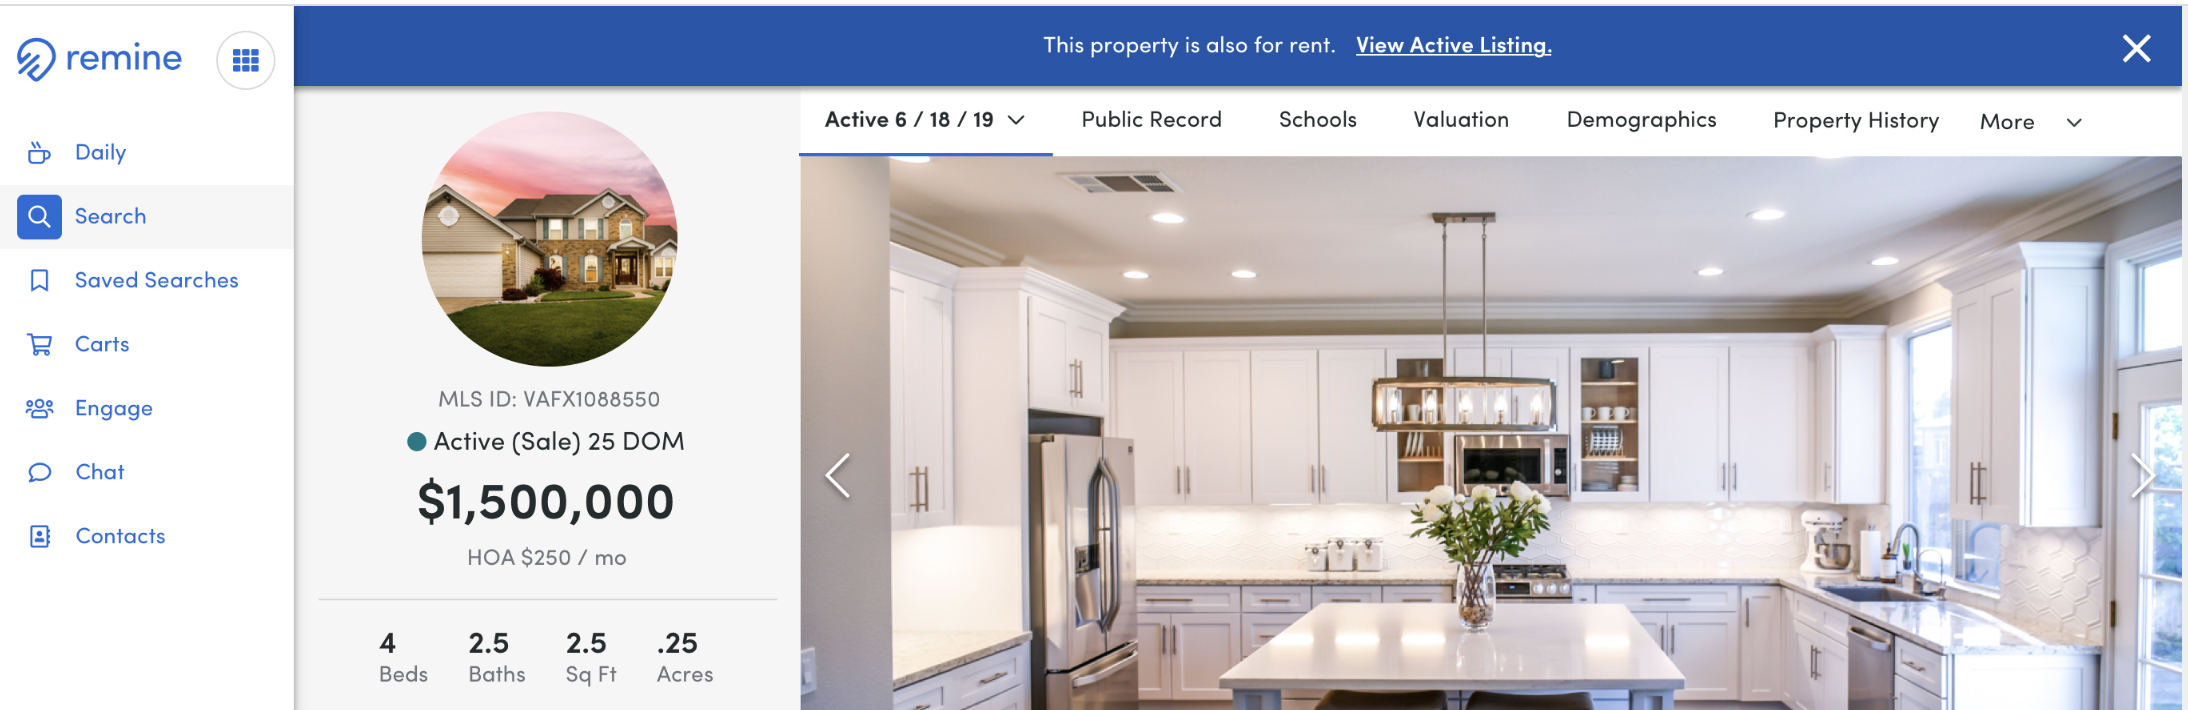 Property Details Page